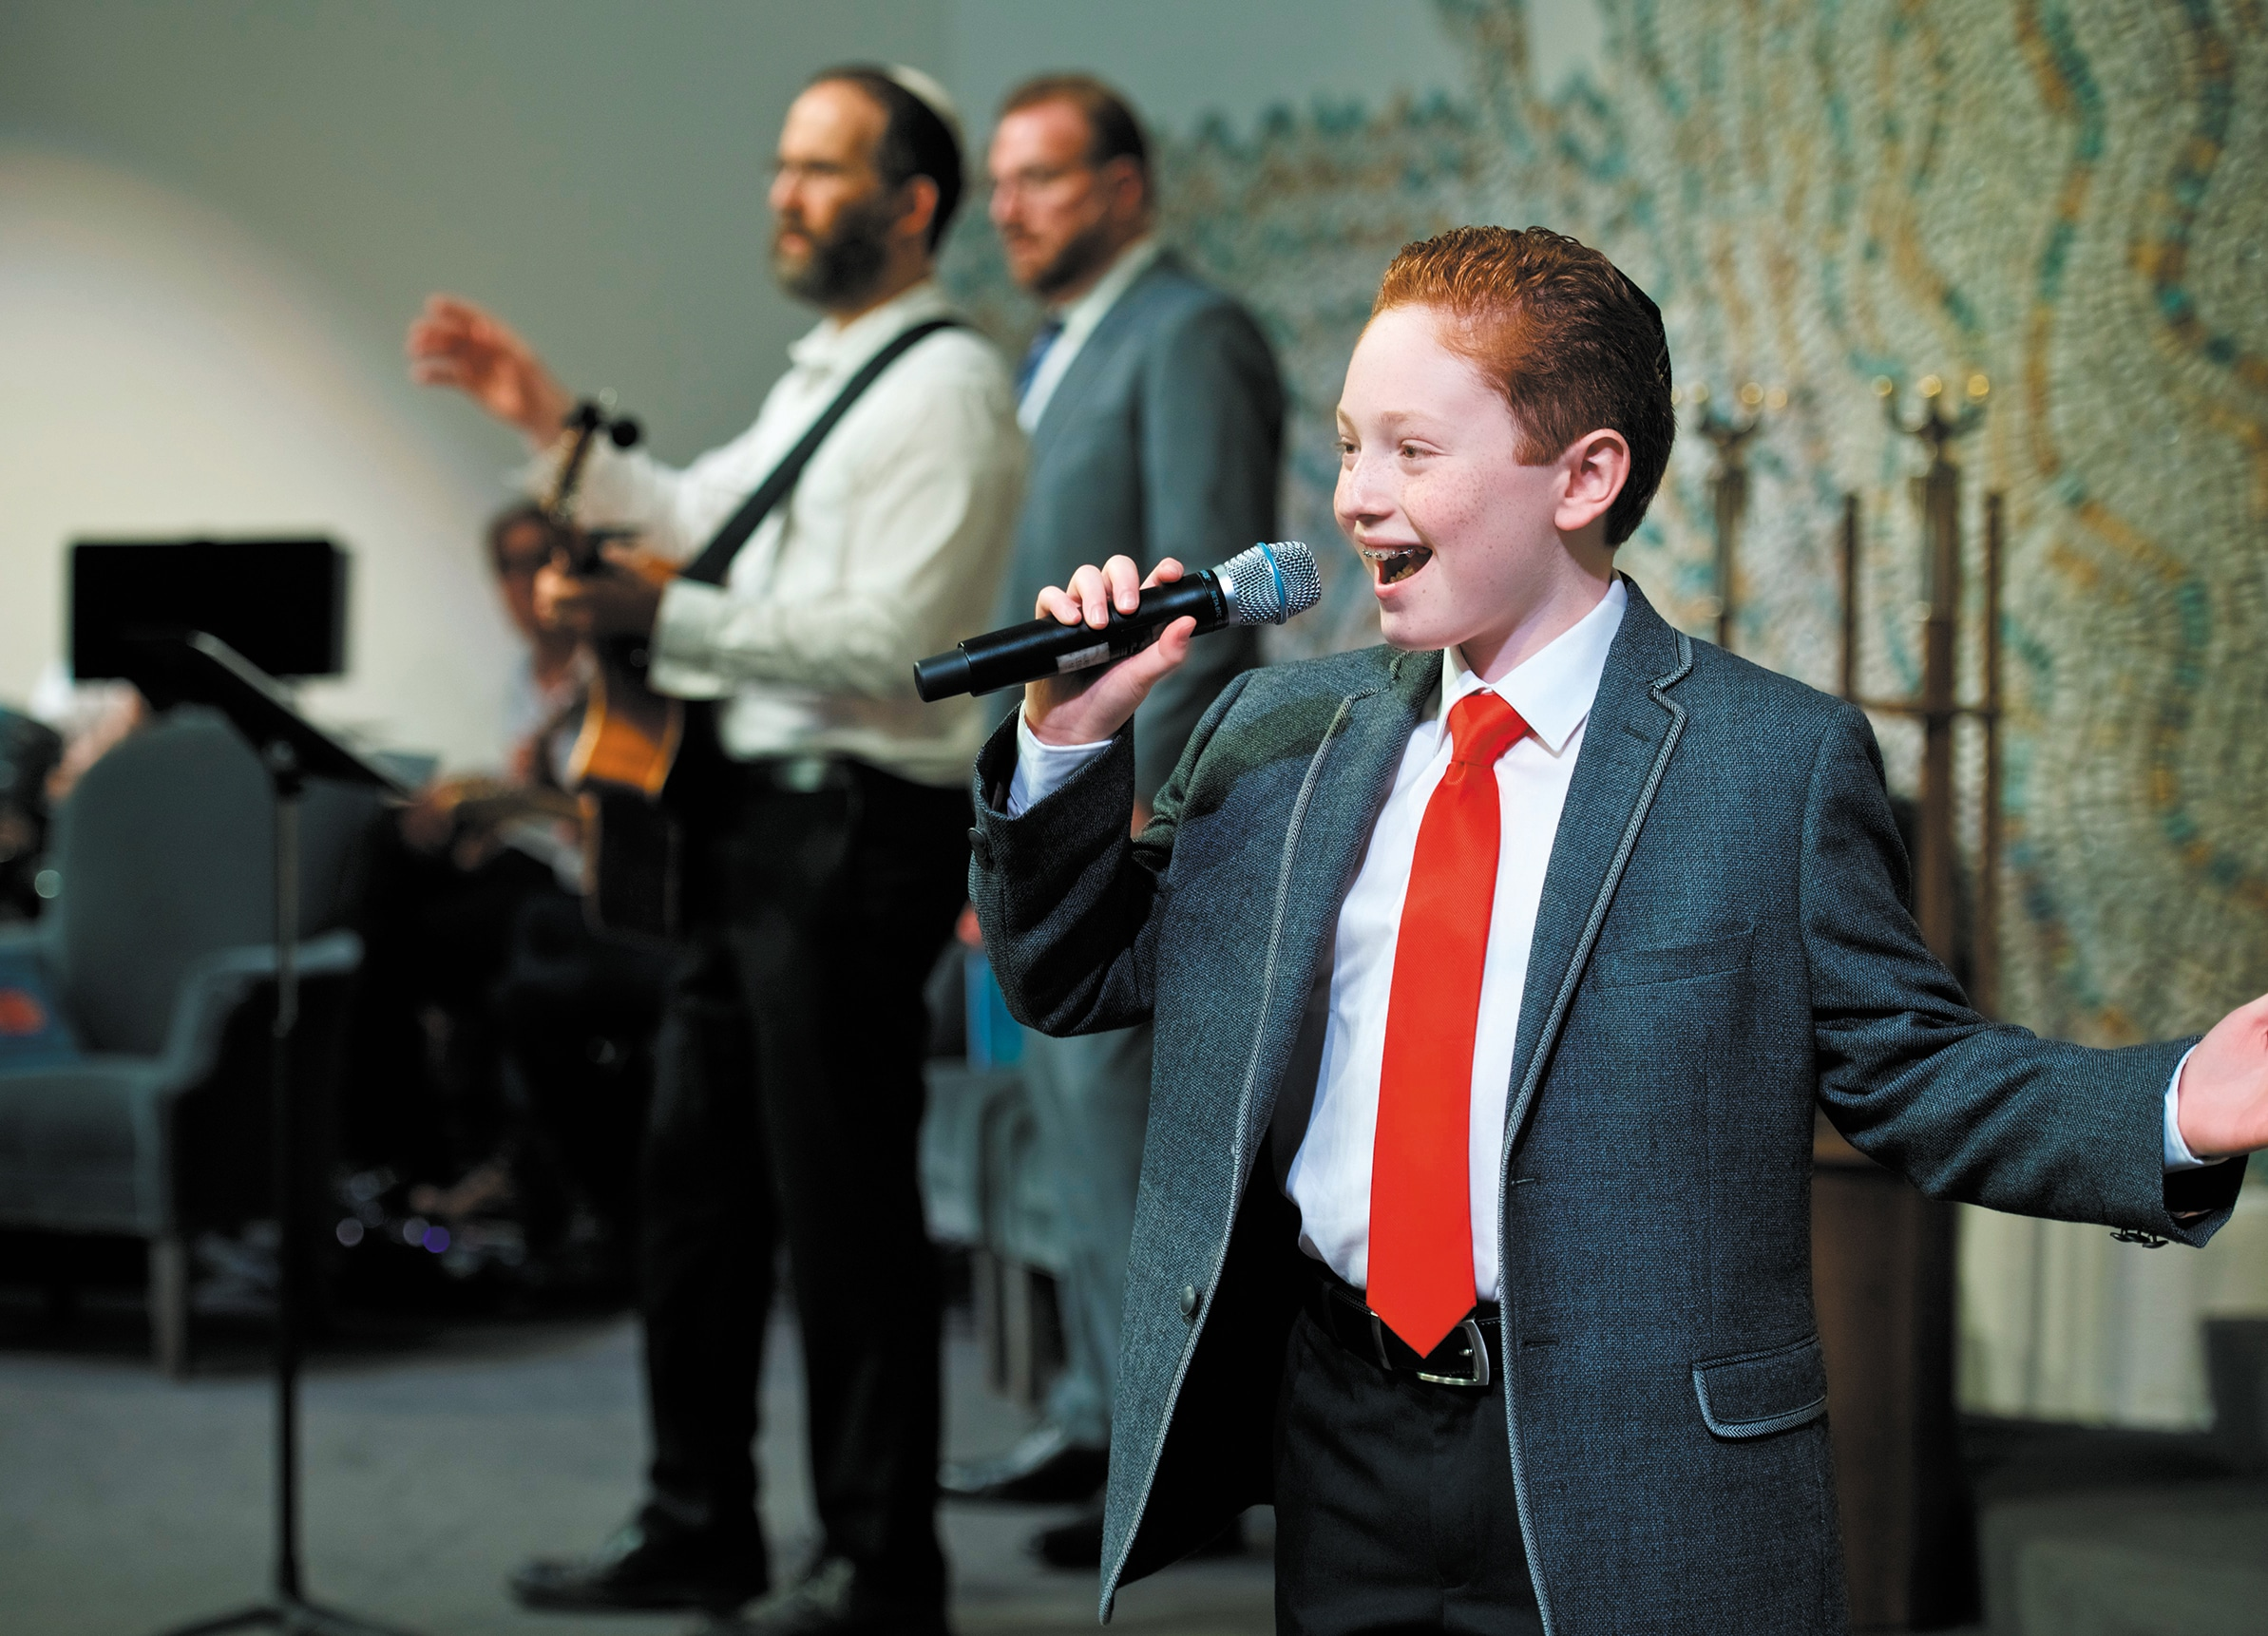 Cameron Klein singing at Temple Israel